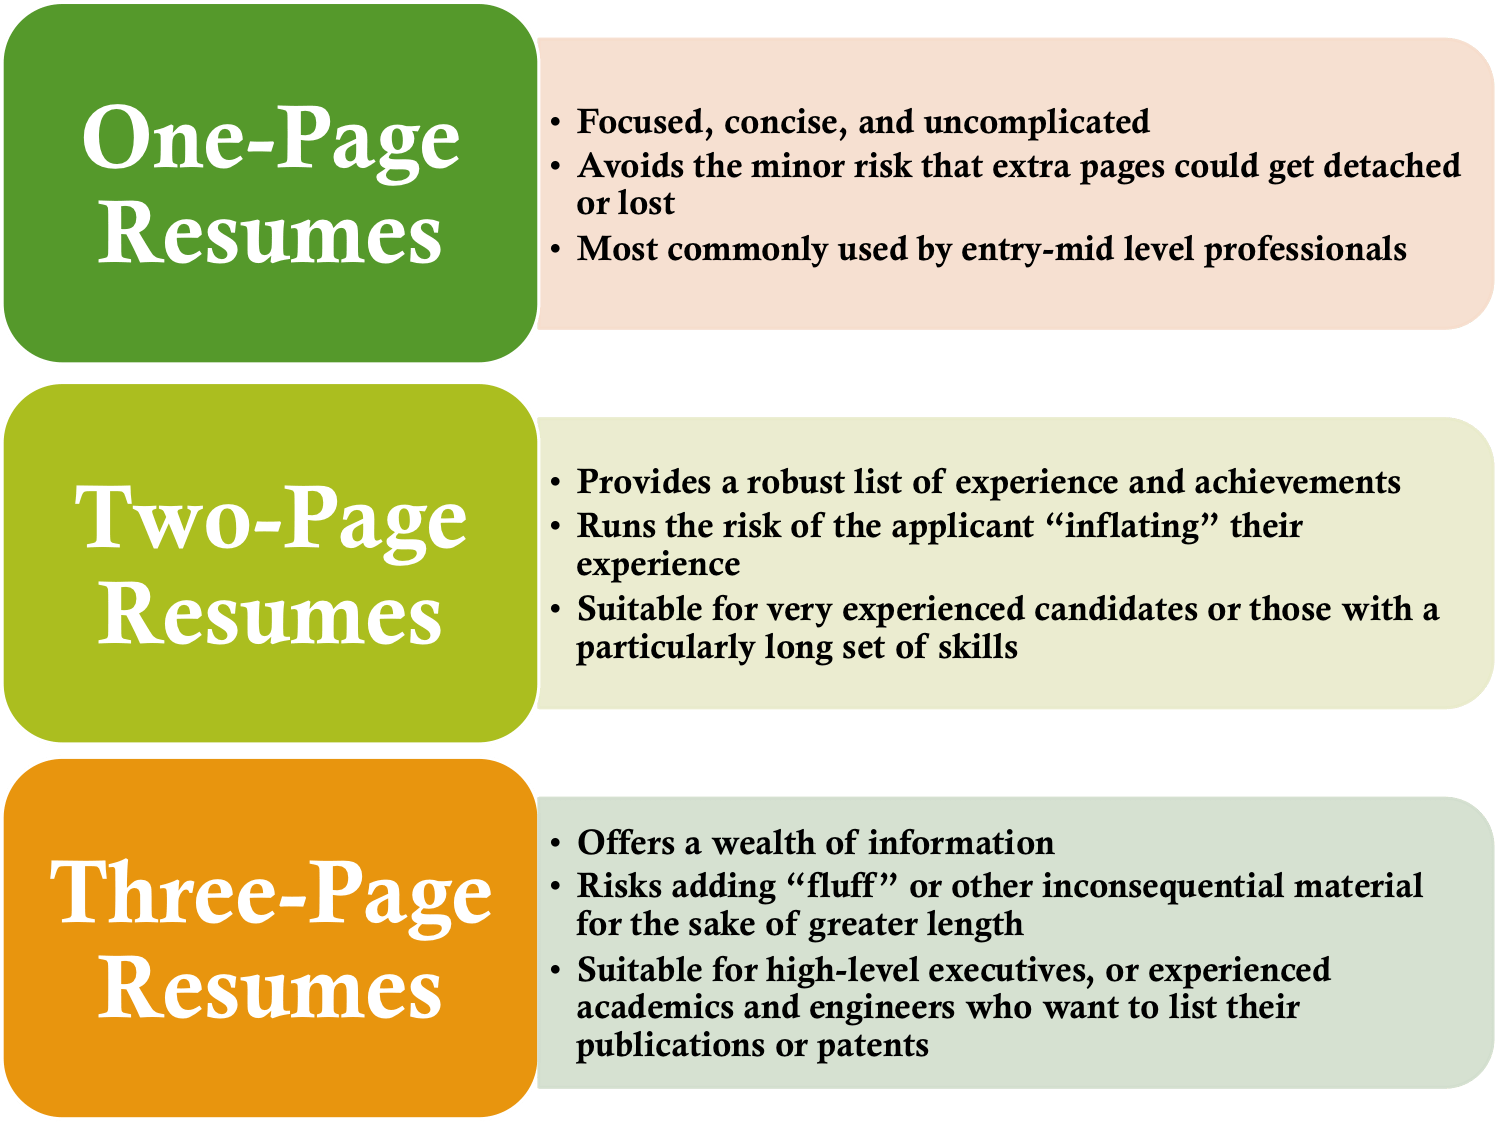 best font for graduate resume service resume best font for graduate resume for a resume type font matters npr professional resume fonts skylogic